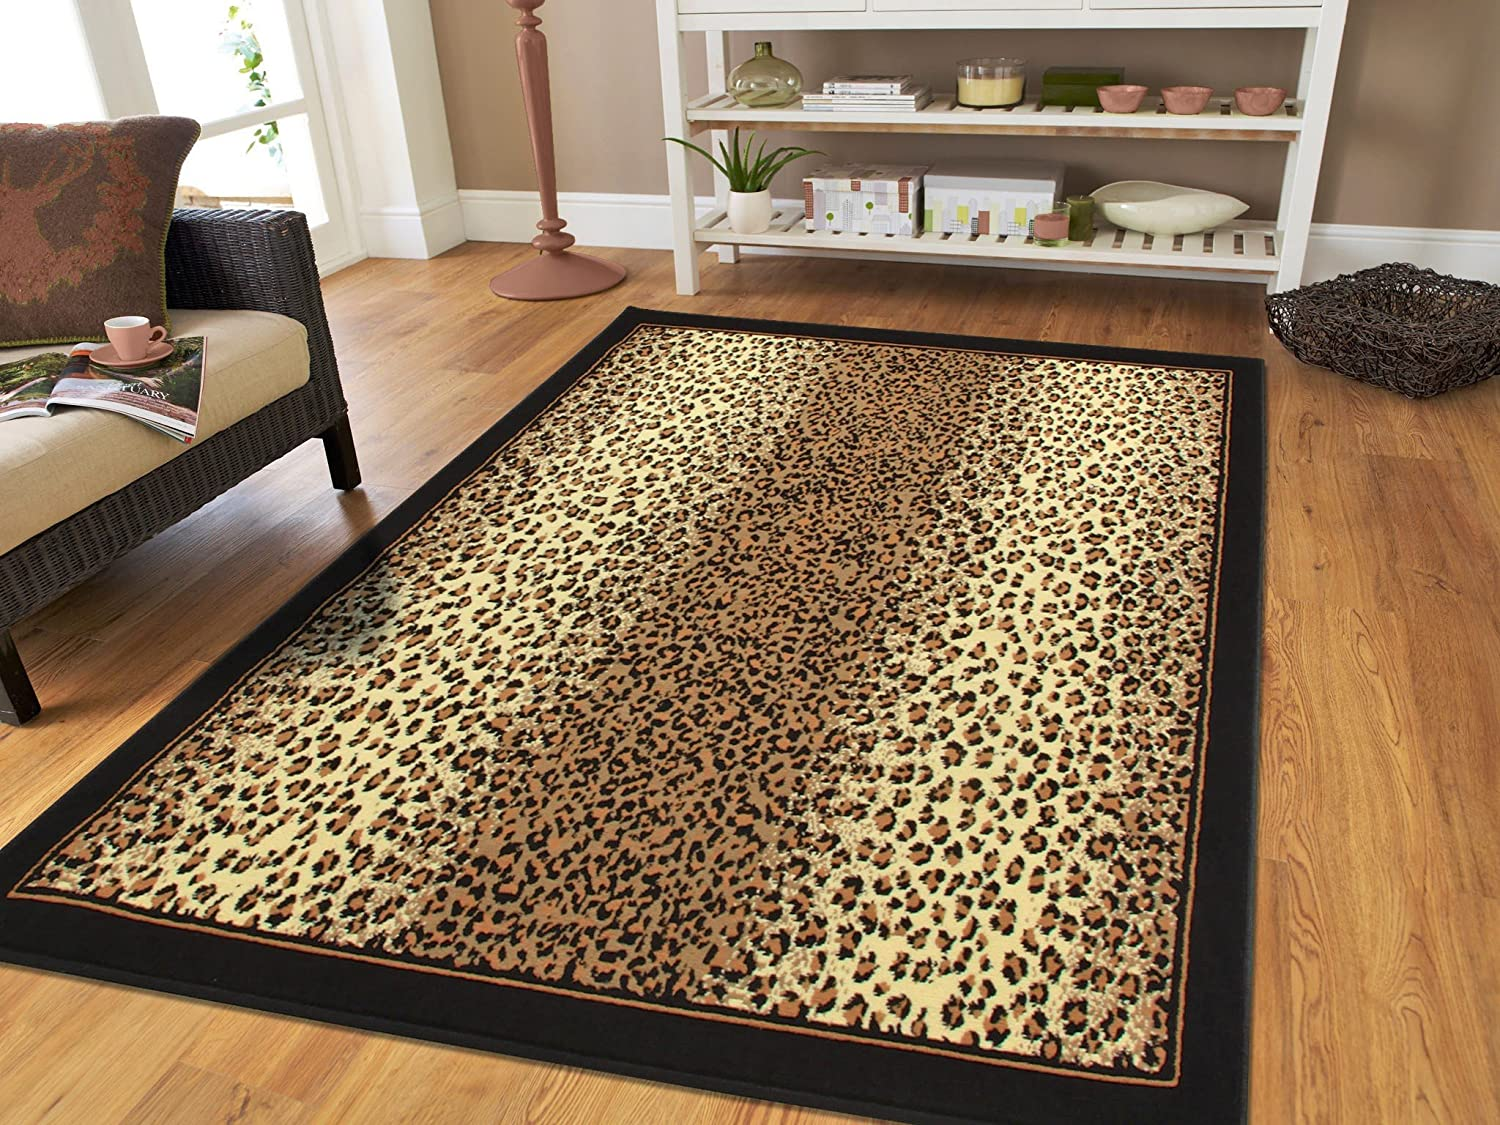 Amazon.com: Large 8x11 Cheetah Rug Animal Print Rectangle Leopard Rugs  Contemporary 8x10 Rugs for Living Room Modern Animal Rugs (Large 8'x11' Rug):  Kitchen ... - Amazon.com: Large 8x11 Cheetah Rug Animal Print Rectangle Leopard